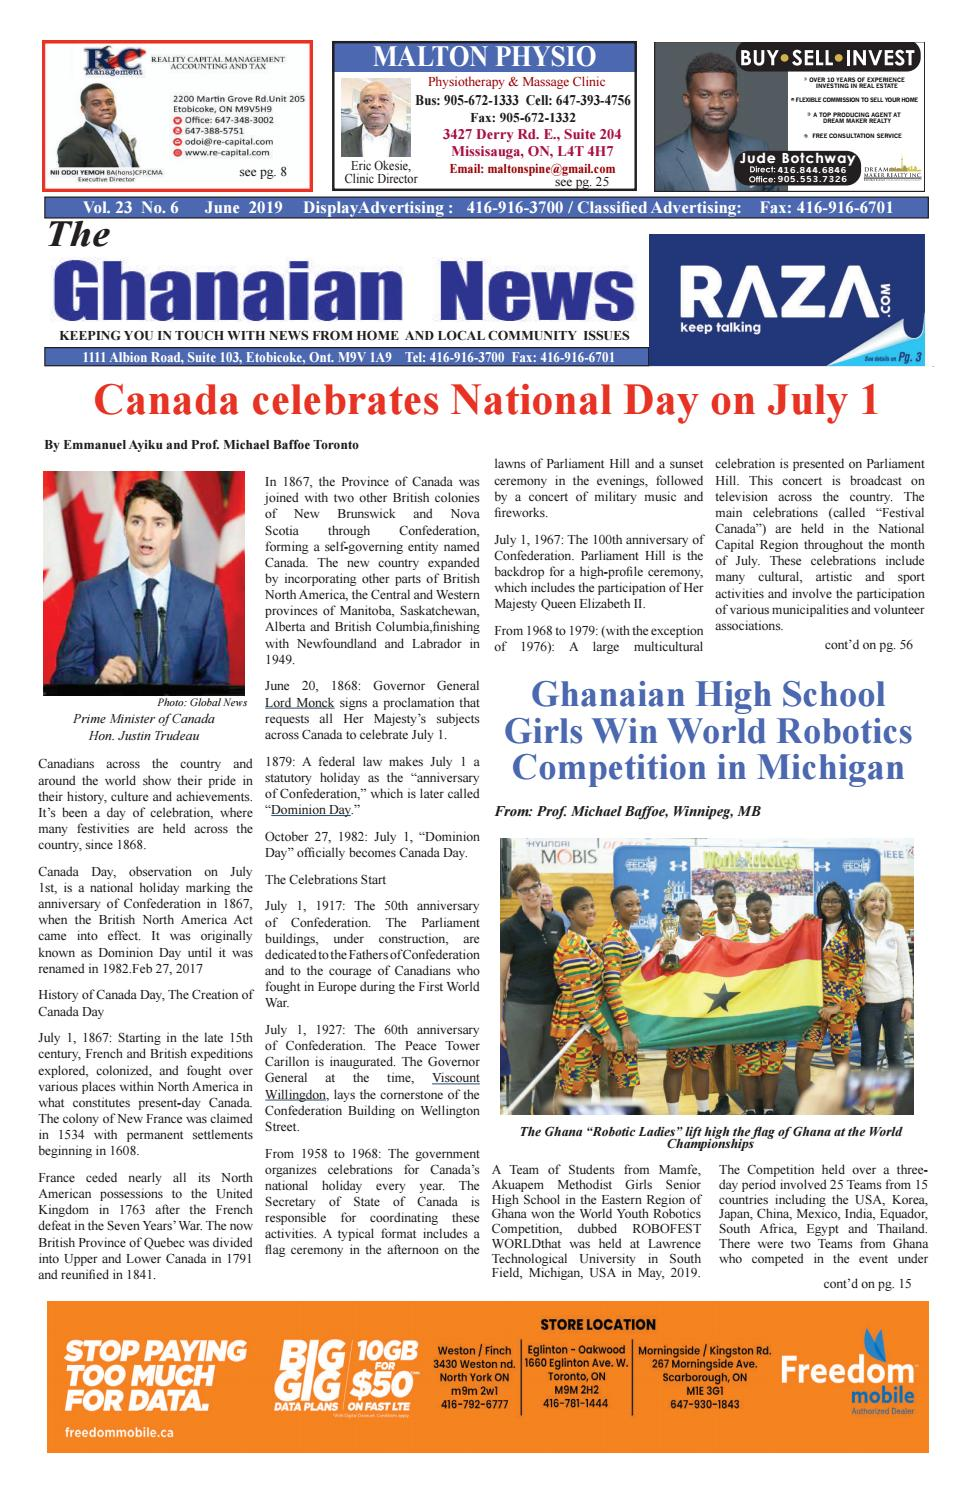 GHANAIAN NEWS - JUNE 2019 by Roots Change - issuu